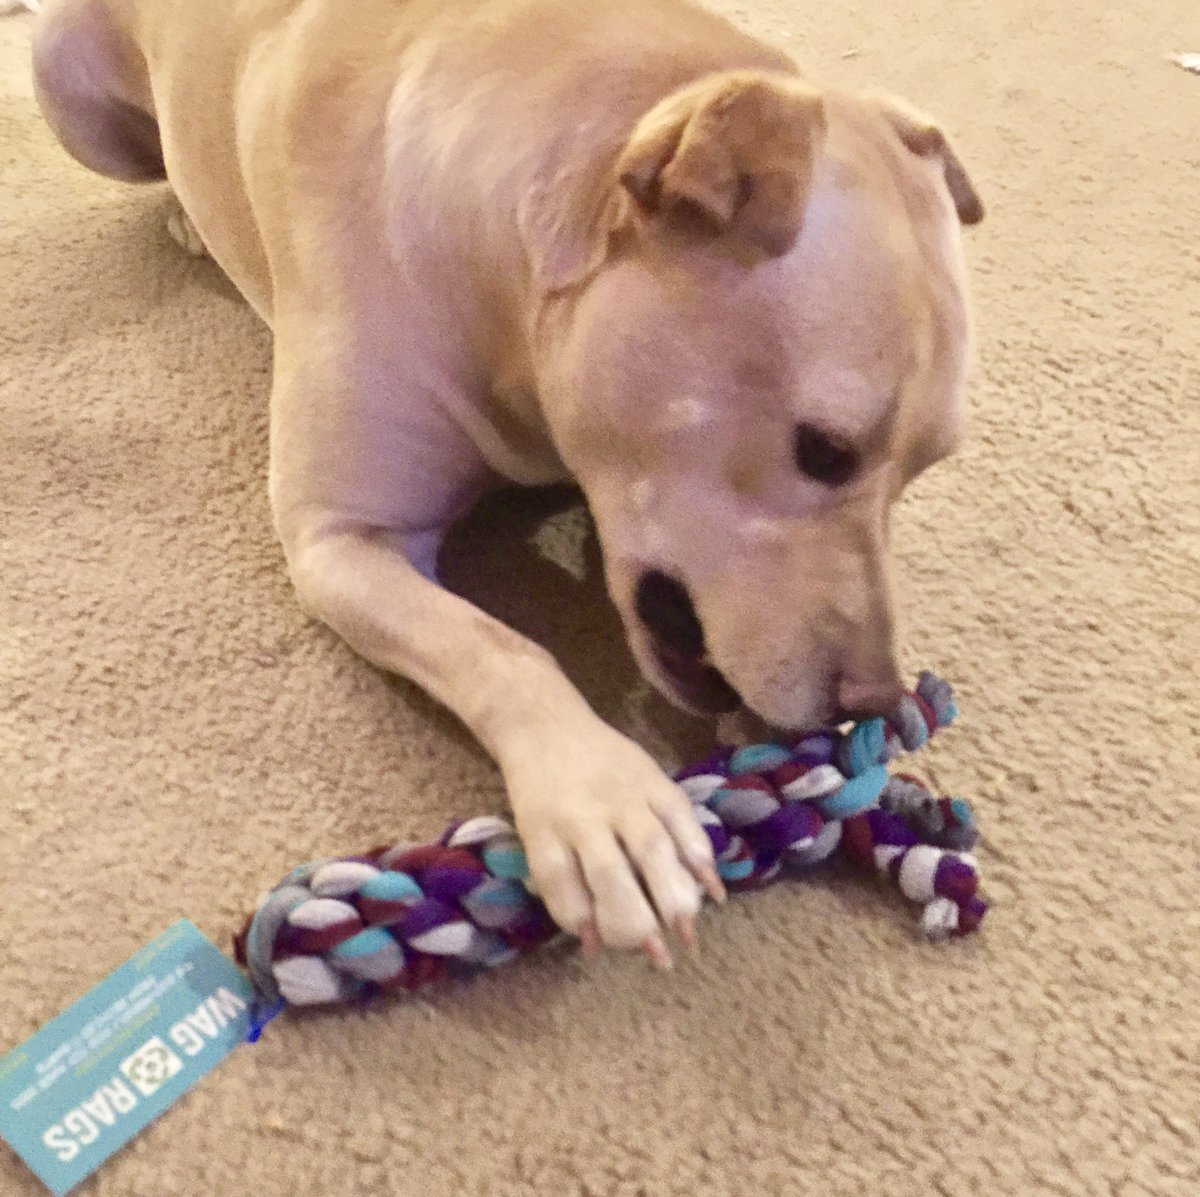 She loves it!   Thanks @TiffanyBond for inspiring me to find this awesome dog toy - made out of old T shirts!     #MaineRaising   Eco-Friendly dog toys from https://www.wag-rags.com/  in Maine  #MaineRaising     #dogsoftwitter #GoGreen